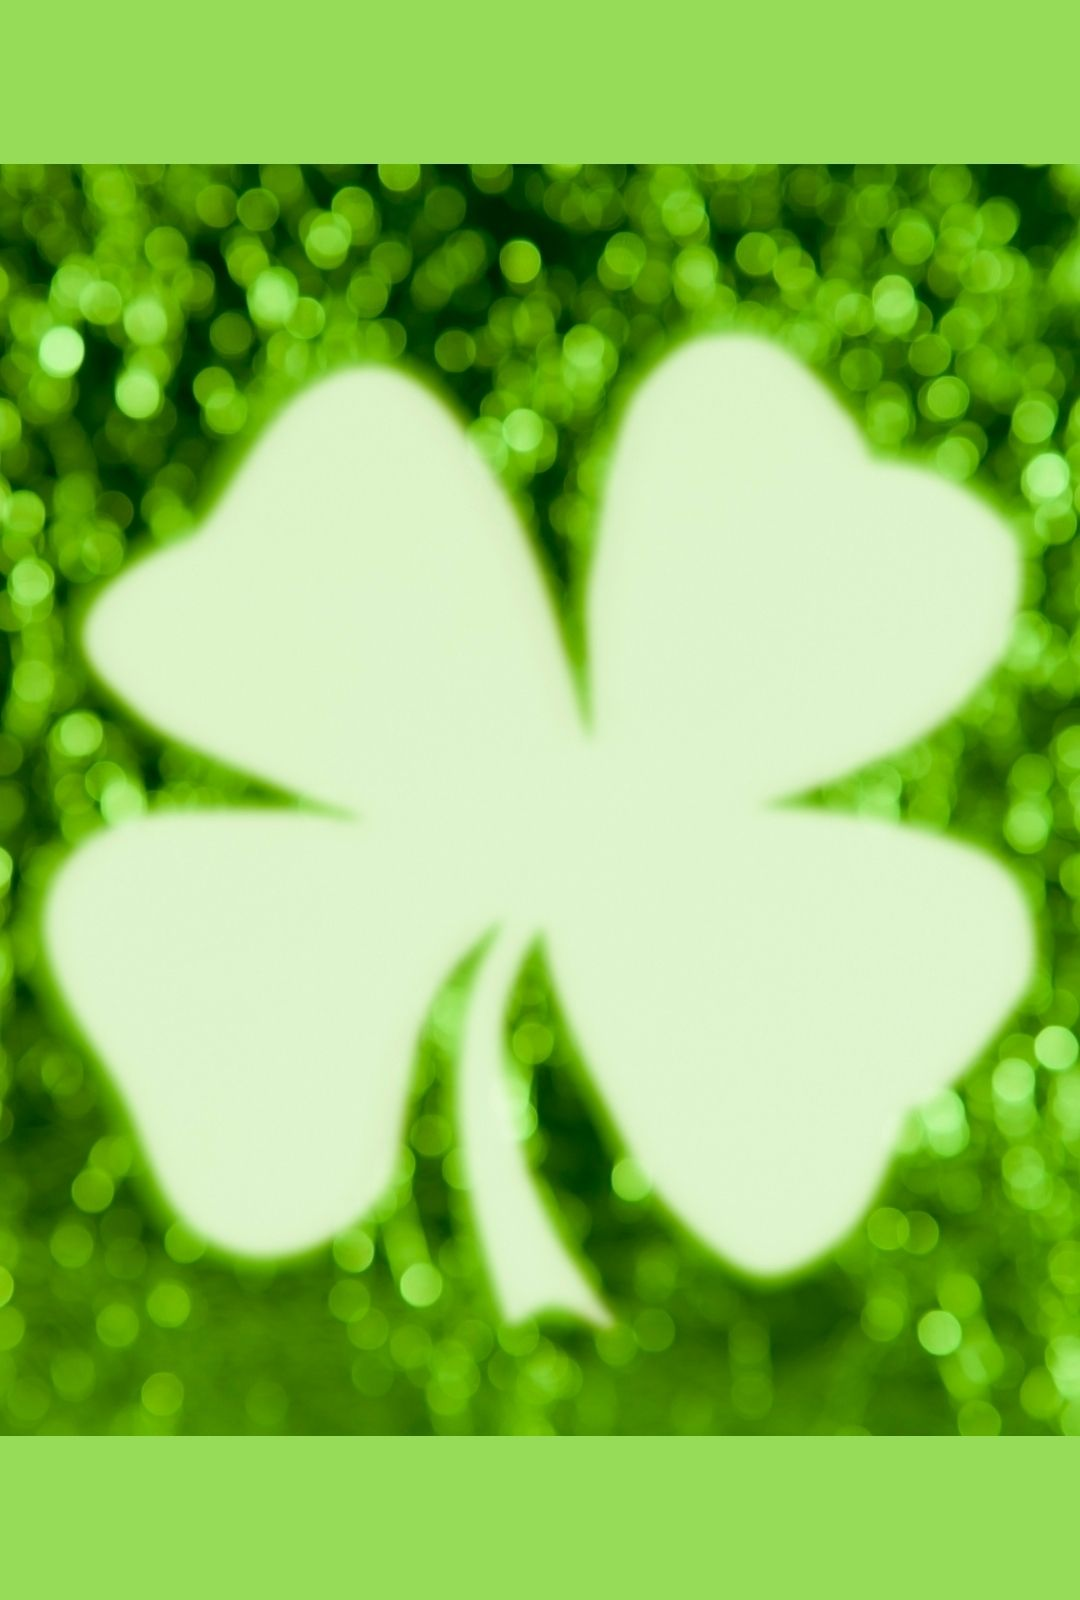 Expired:Lucky Clovers to Celebrate St. Paddy's Day